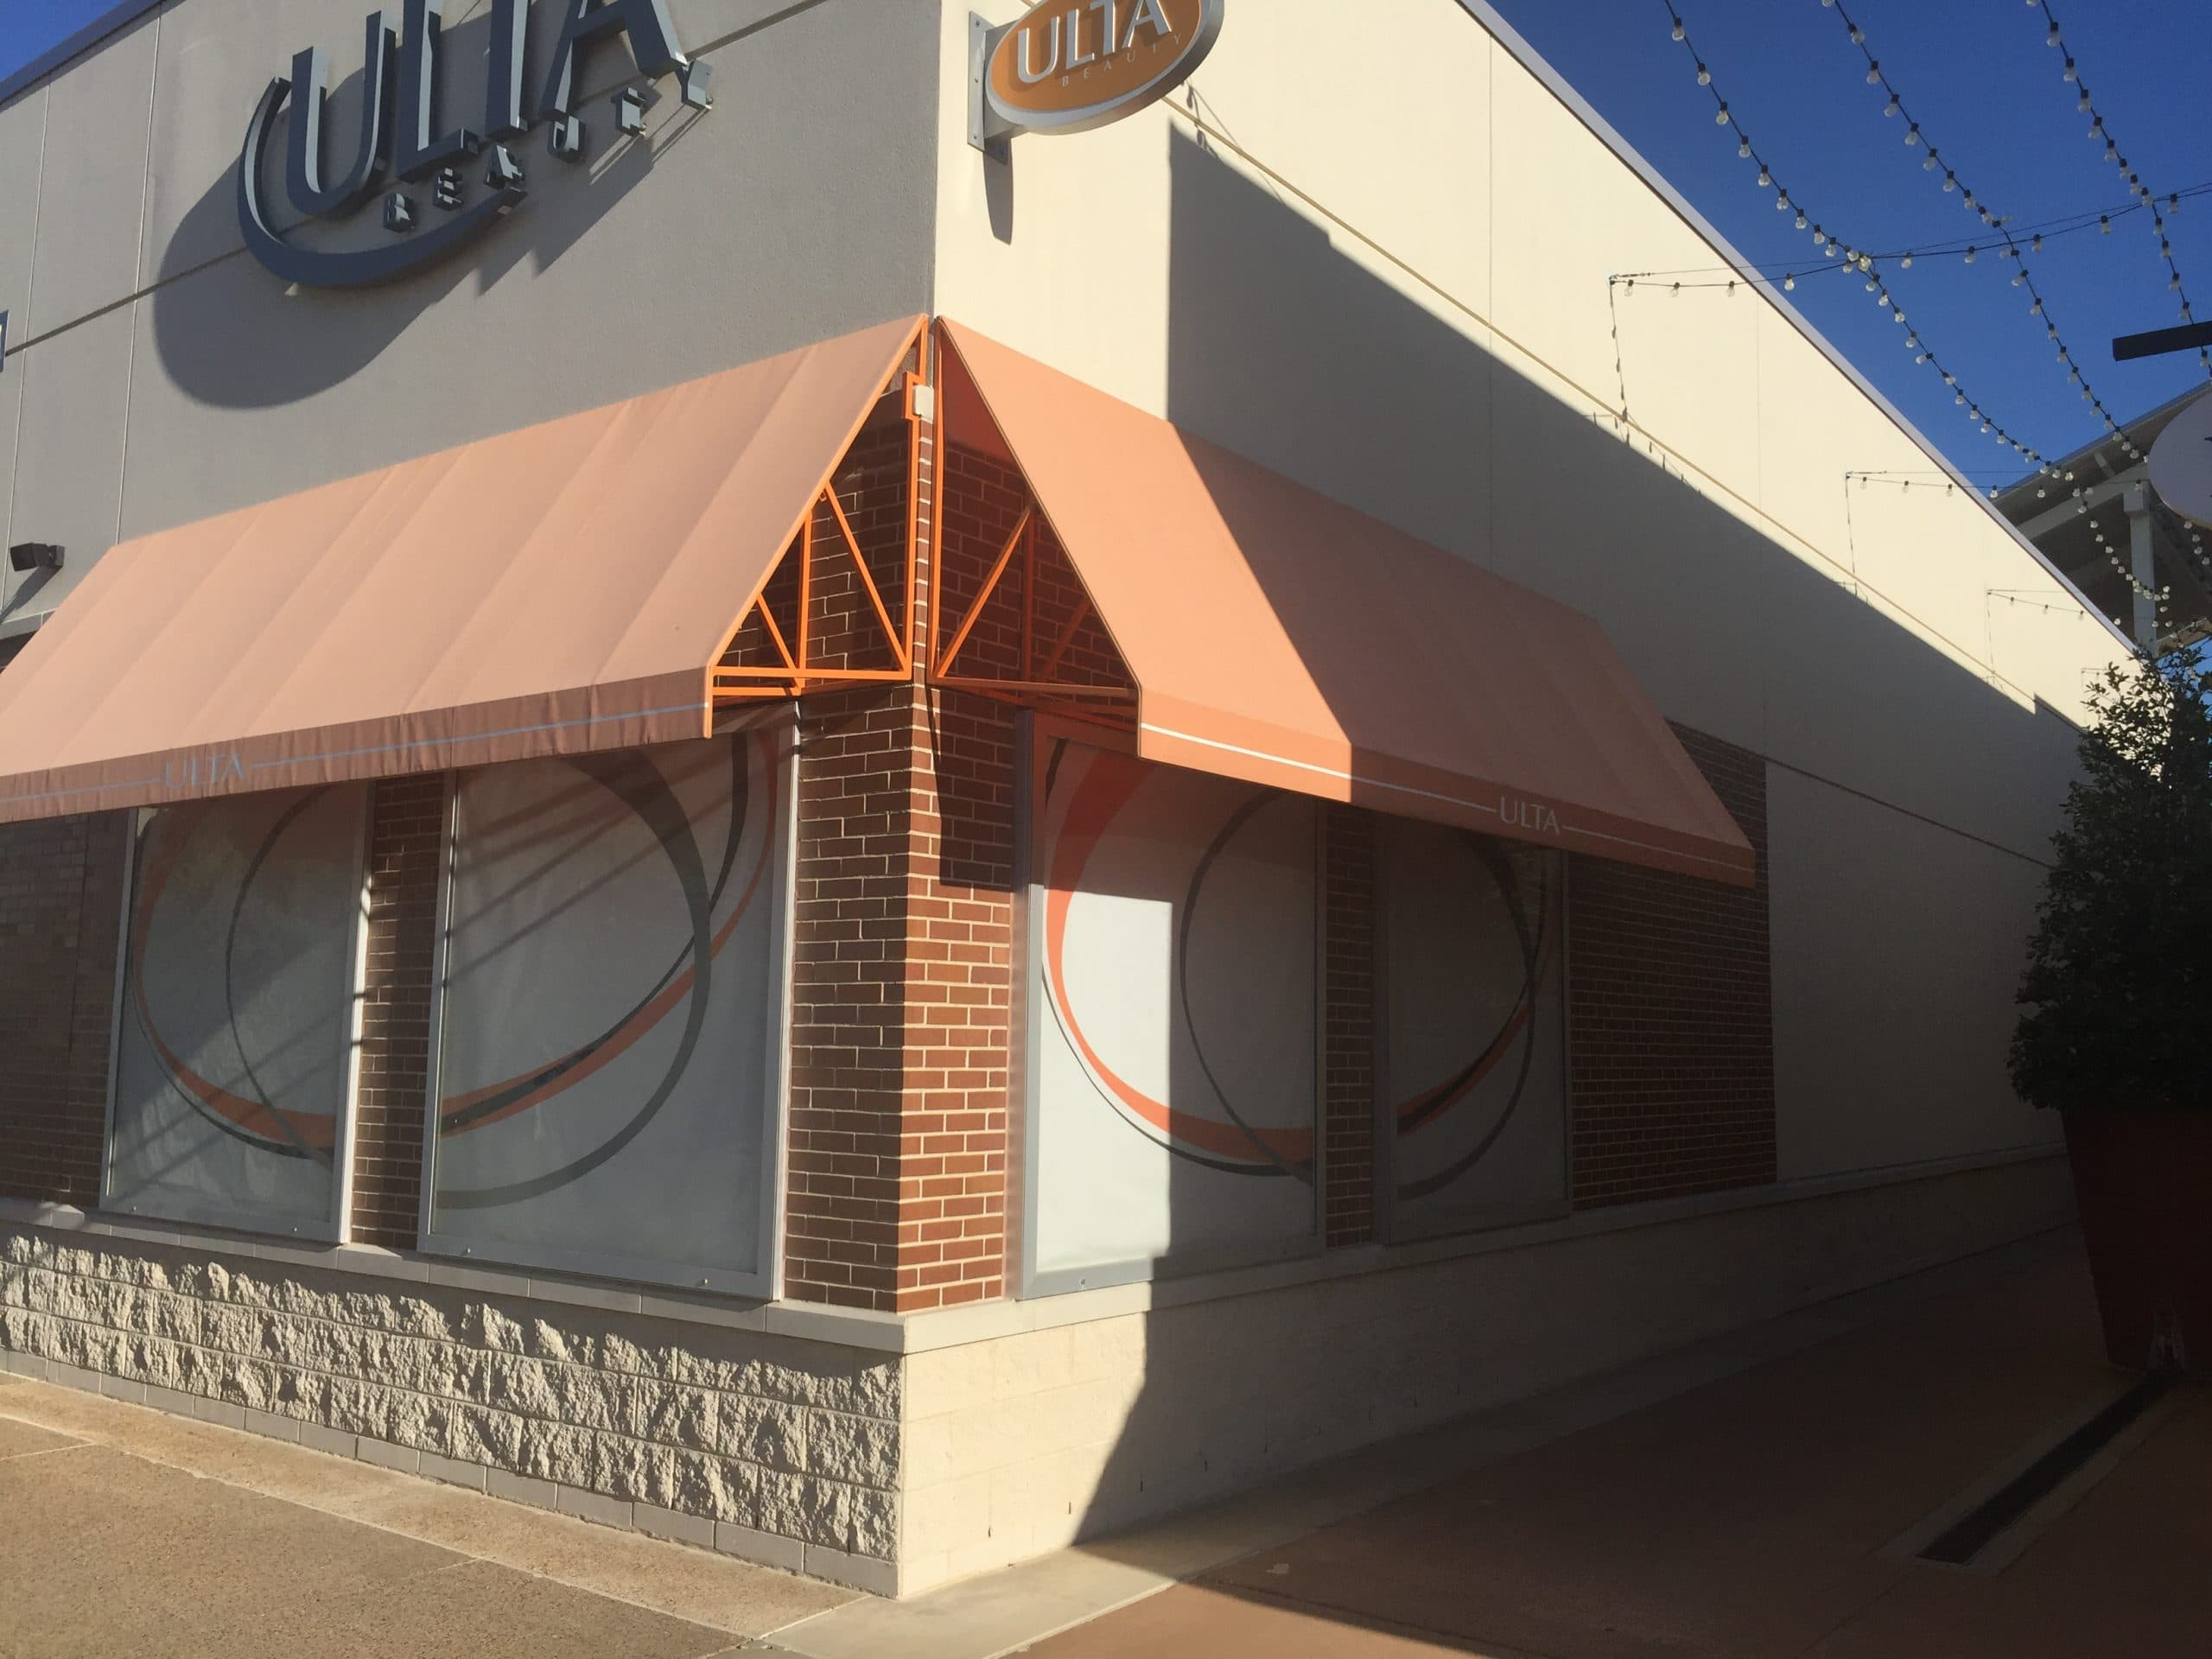 Commercial Awning Cleaning Dallas, TX